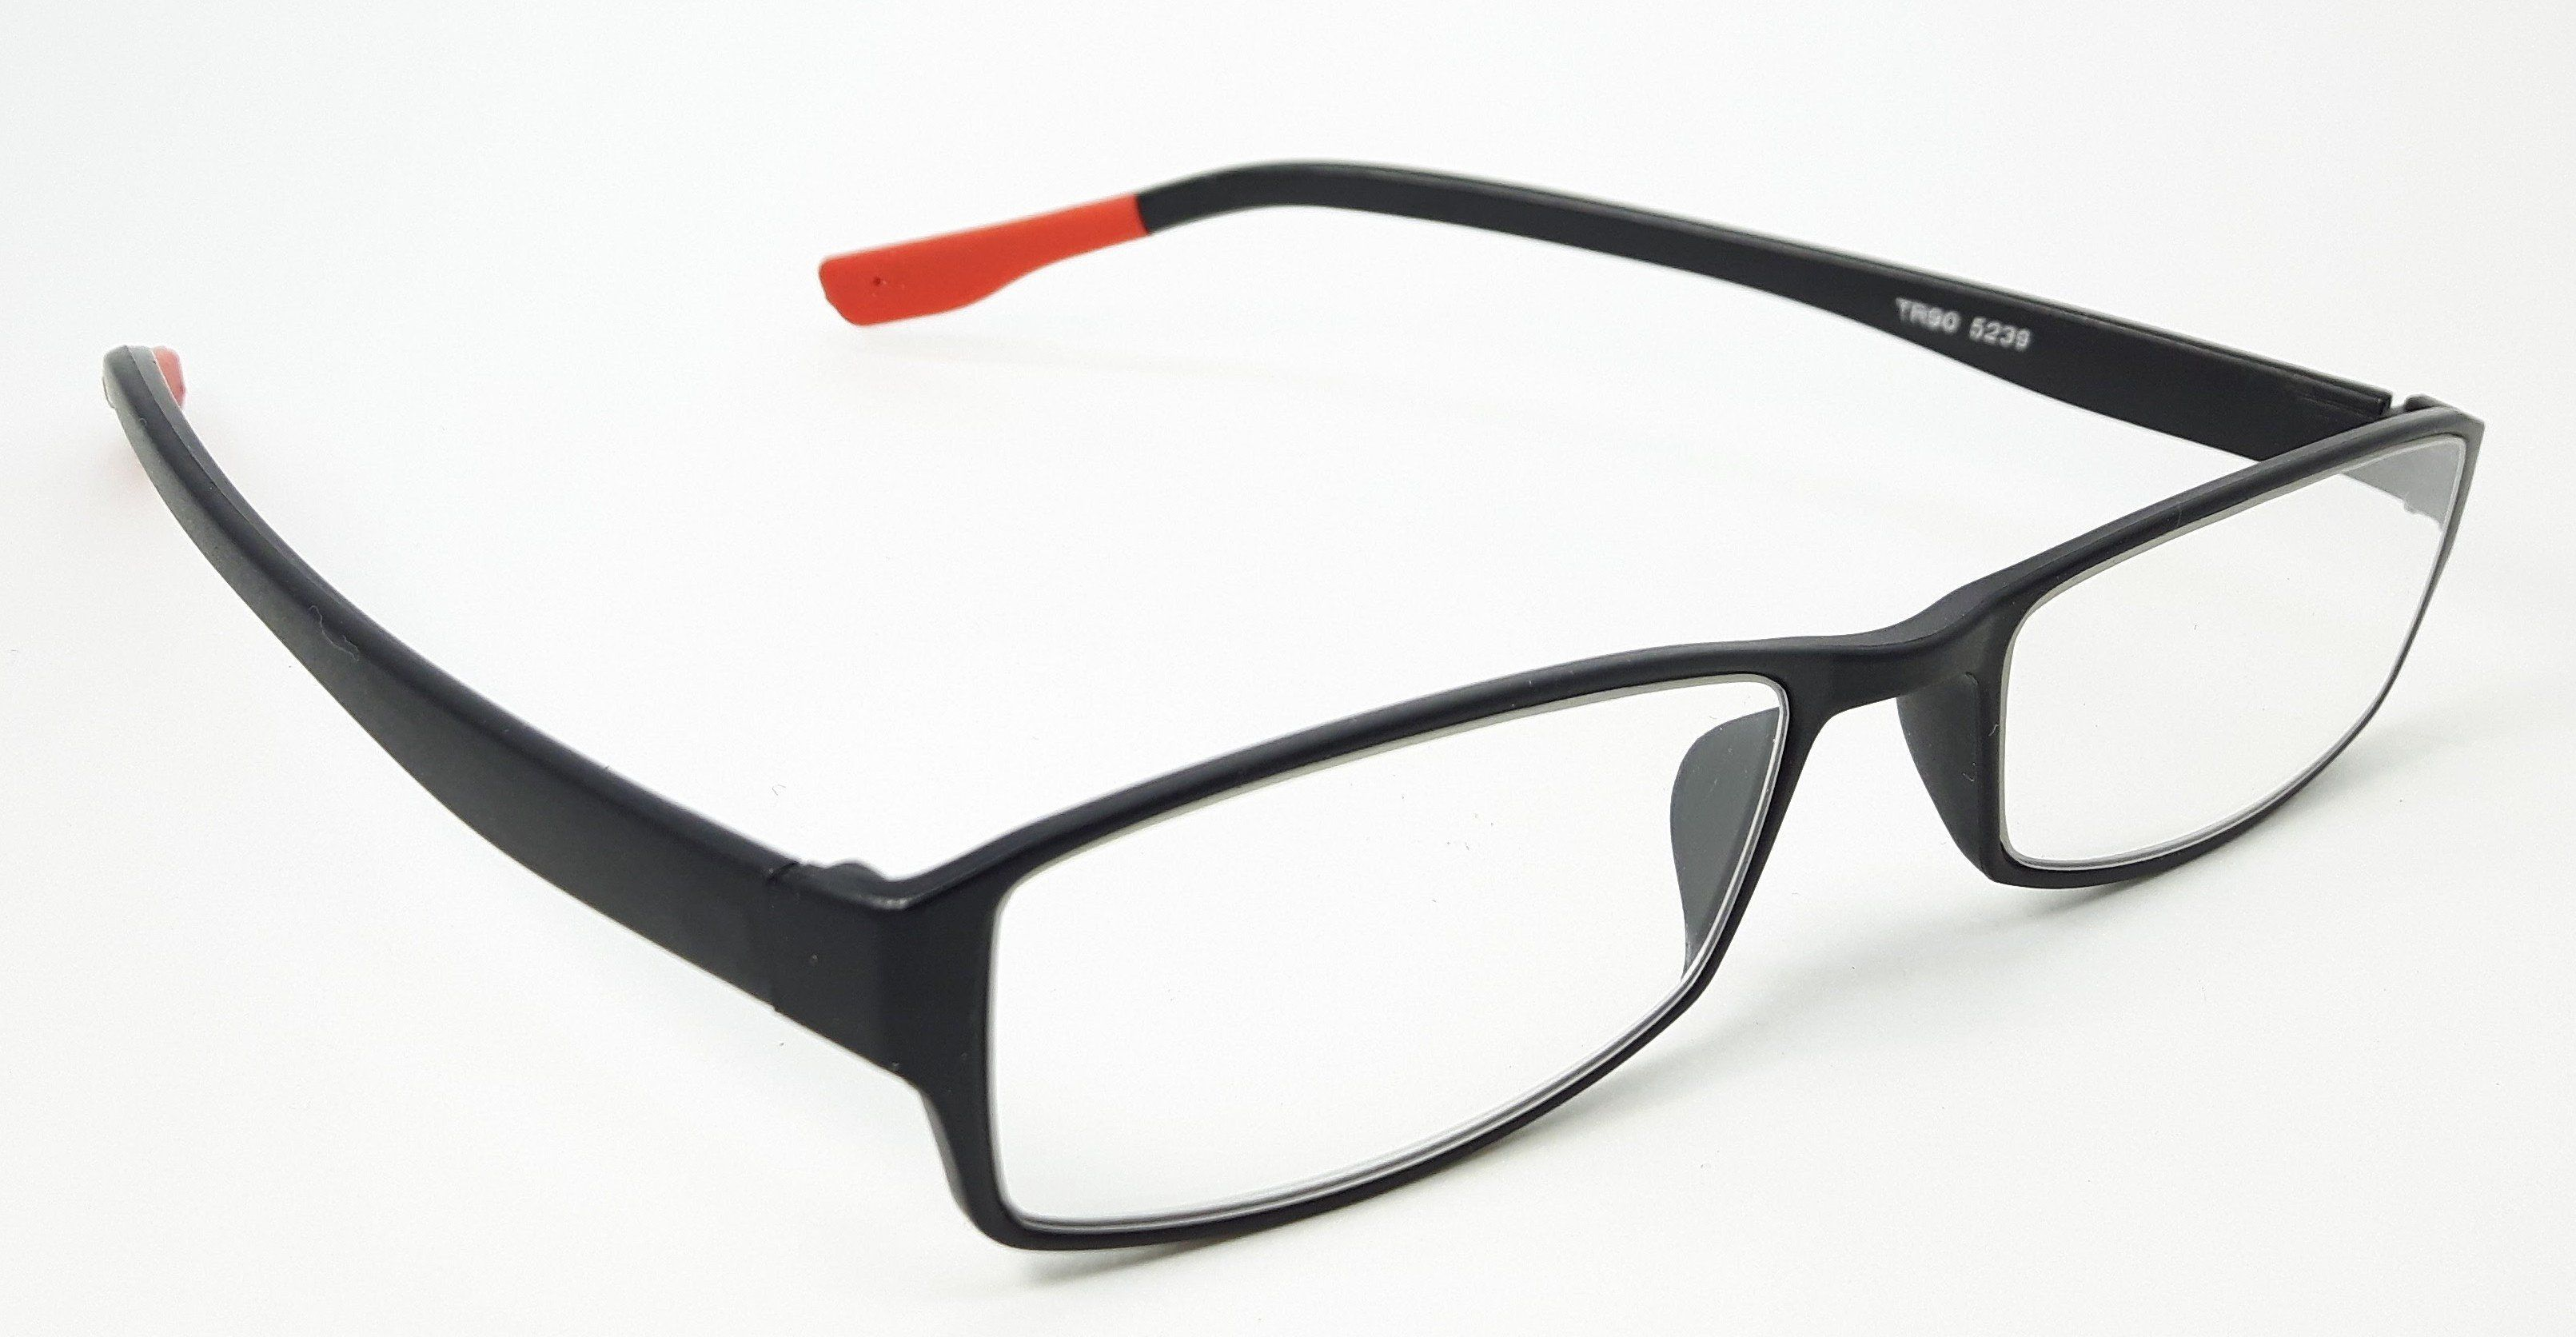 72877af663c6 Flexy is flexible readers with a slimline frame that looks great on men and  women. They re very lightweight and comfortable